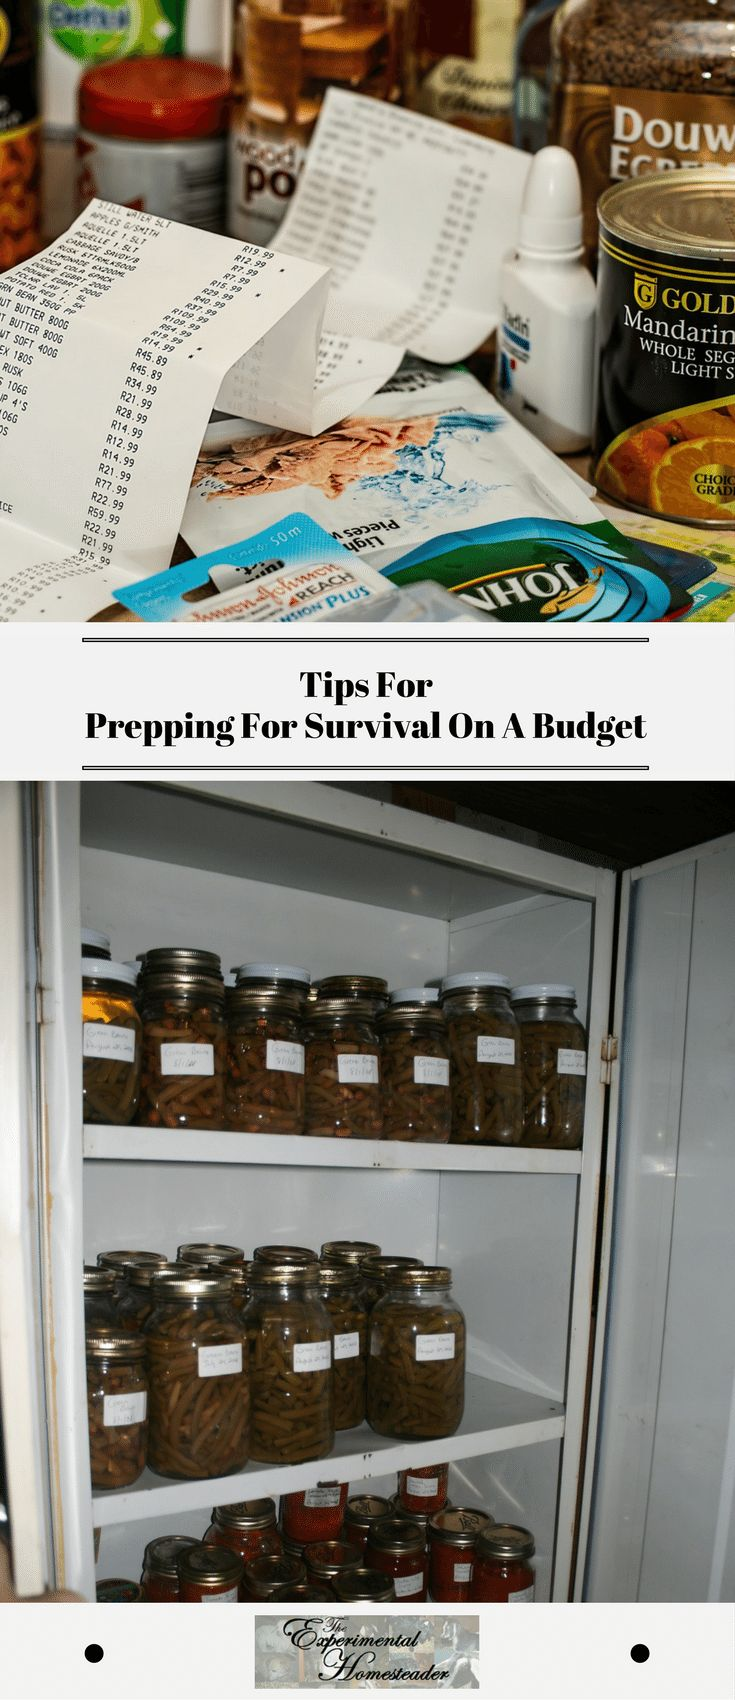 Tips For Prepping For Survival On A Budget Prepping for survival on a tight budget is possible. The first step is to prepare your emergency readiness plan so you know what supplies you need. #preppingforsurvival #emergencypreparedness #emergencyreadinessplan